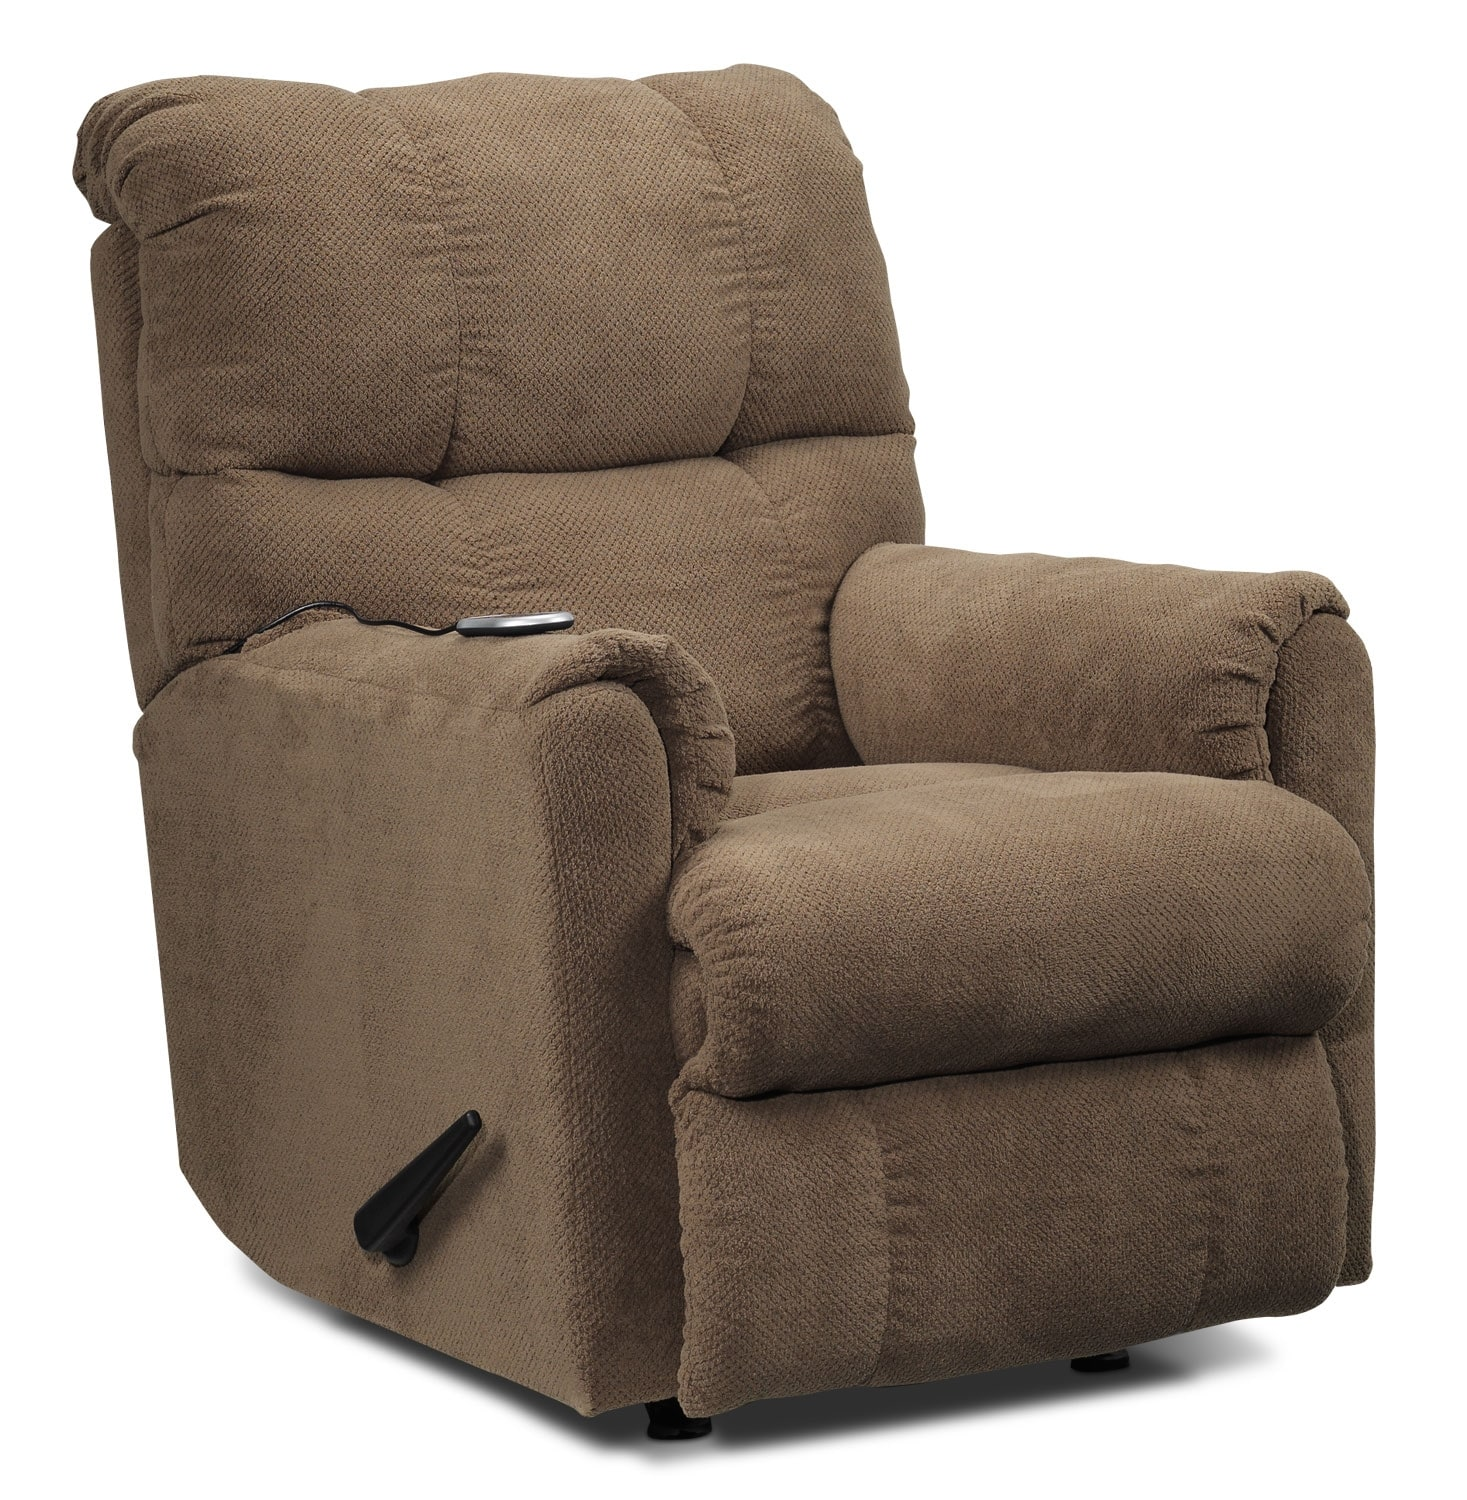 Living Room Furniture - Mosby Recliner - Brown